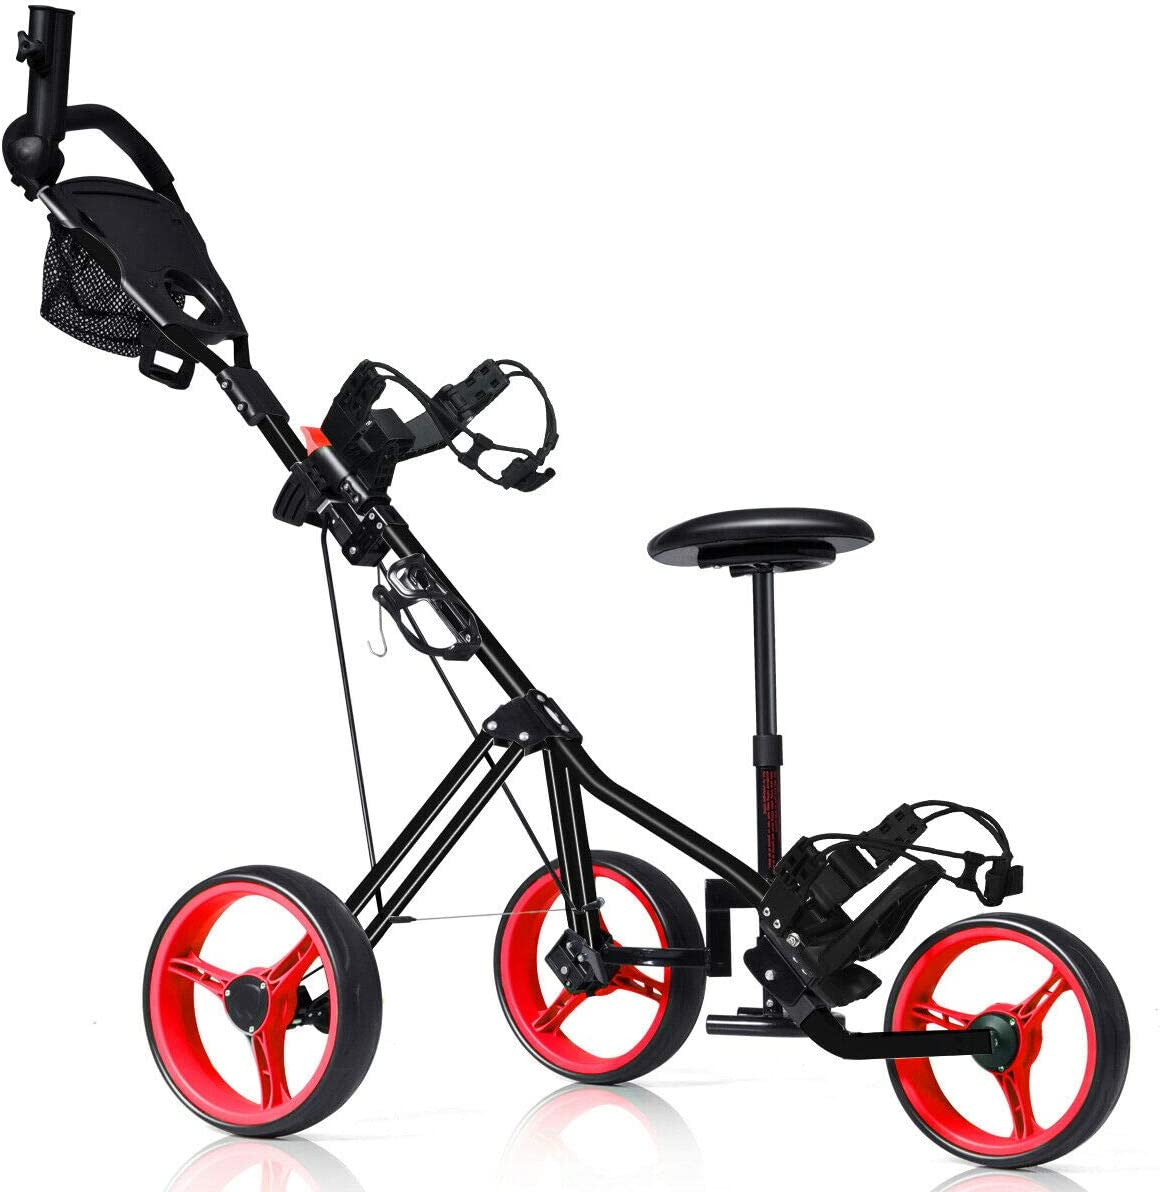 n-bright Design Lightweight Golf Club Wh Factory outlet Genuine Cart 3 Trolley Foldable